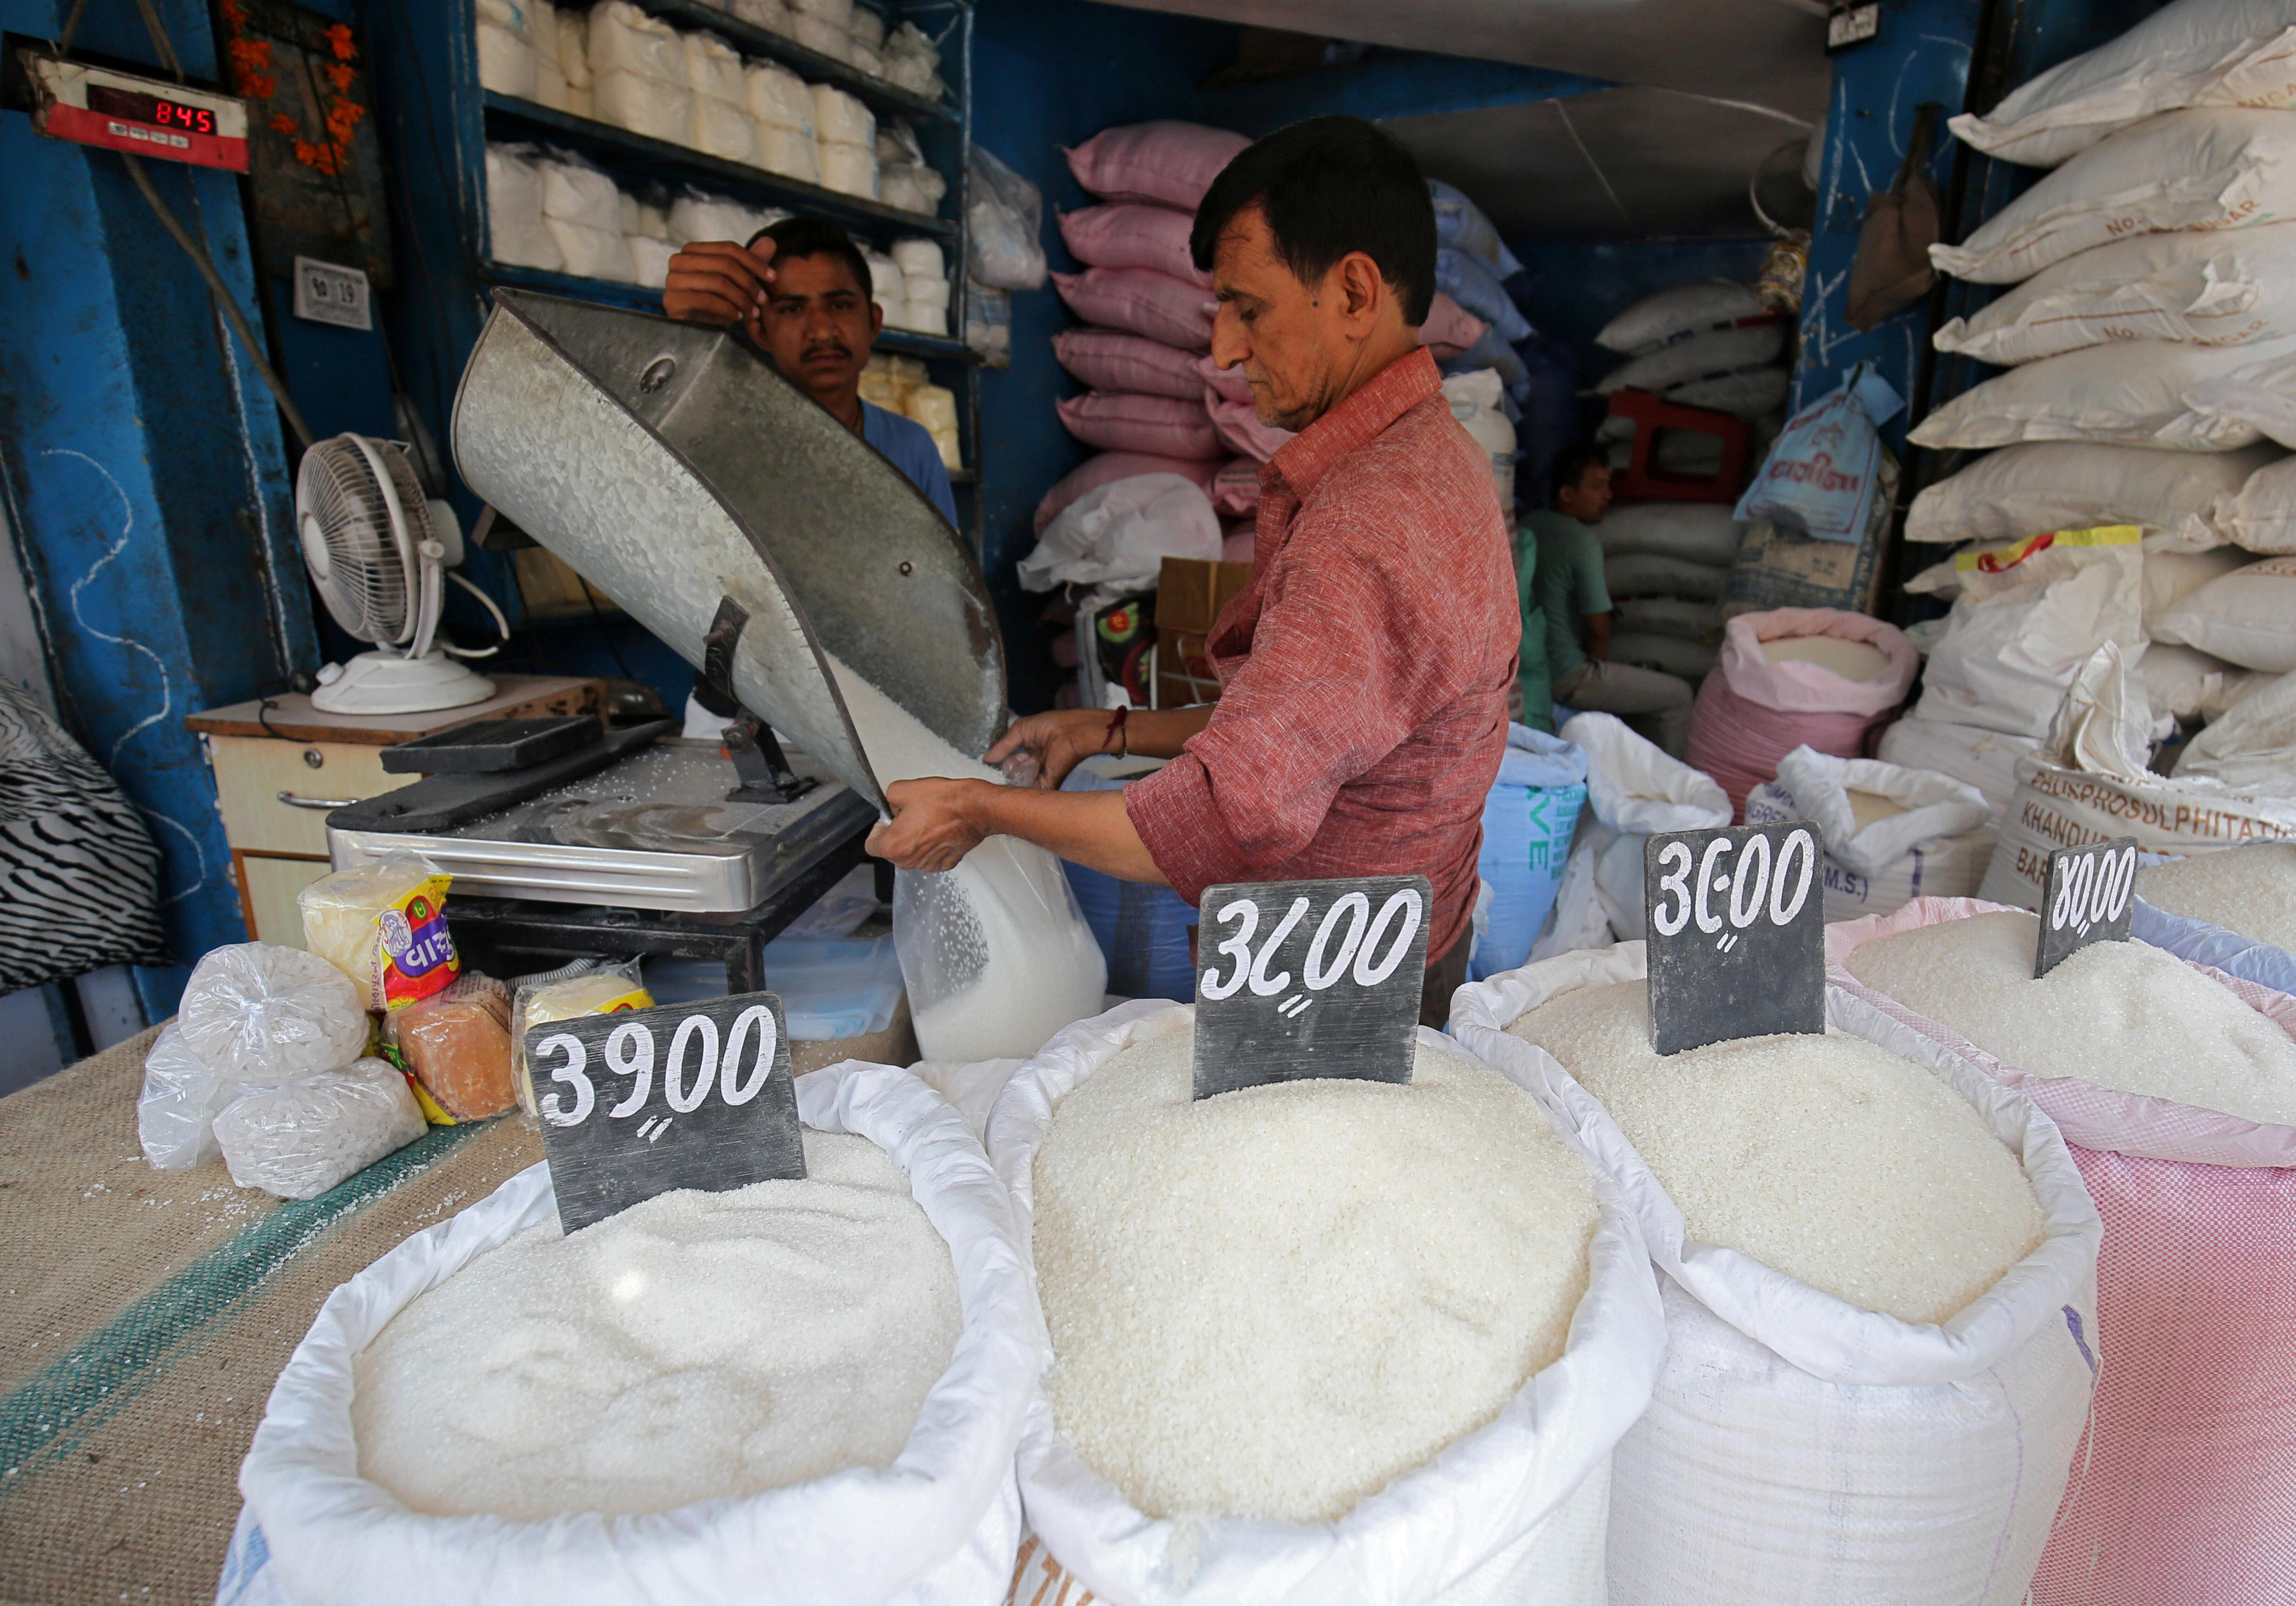 India's sugar output could drop 15% as drought hits - industry sources